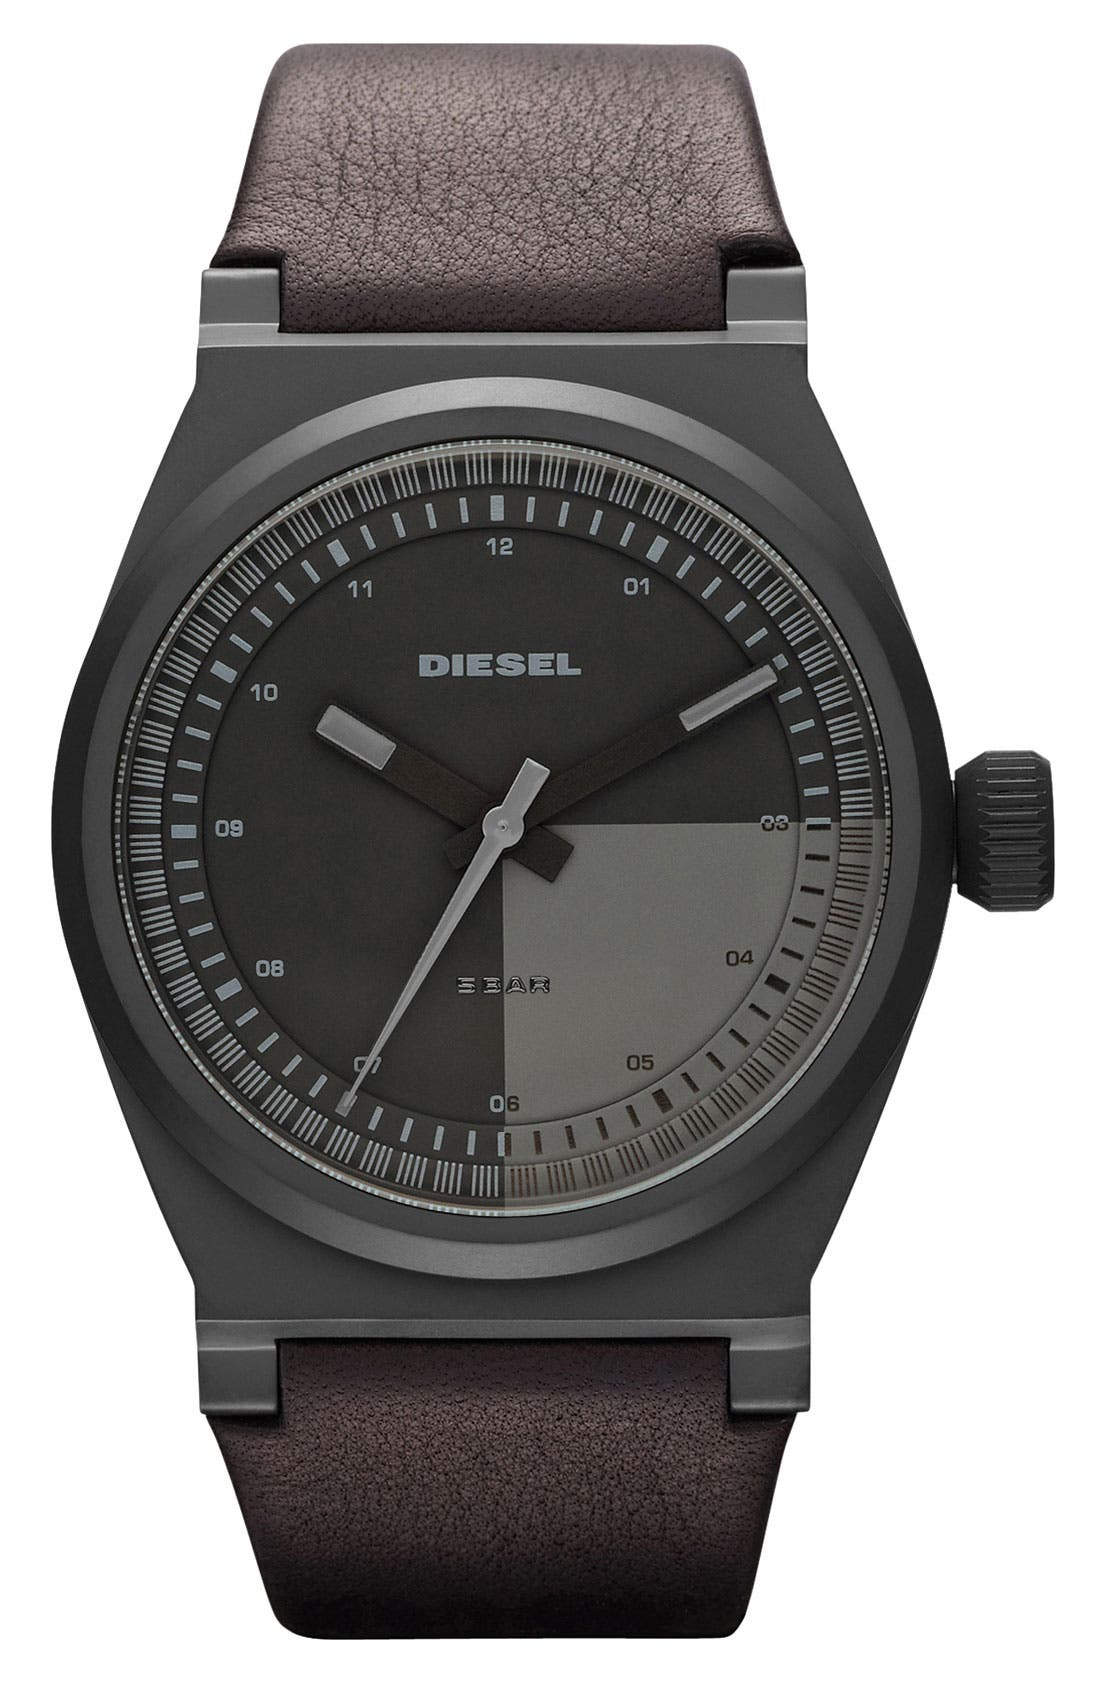 Main Image - DIESEL® 'Turbo' Leather Strap Watch, 44mm x 51mm